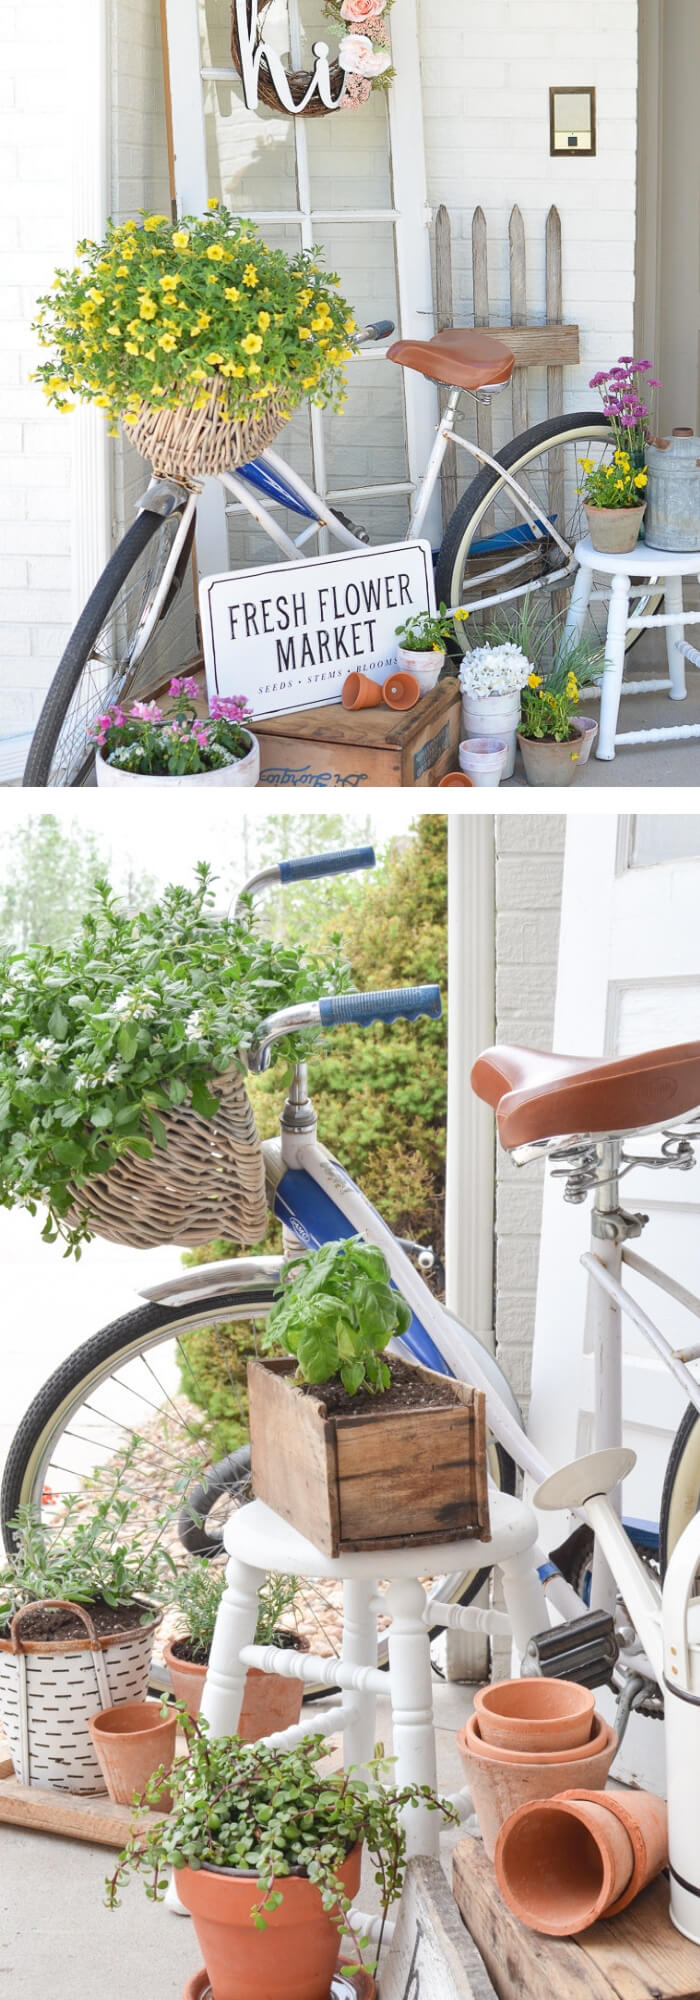 A vintage farmhouse style to welcome summer | Best Outdoor Wall Decor Ideas